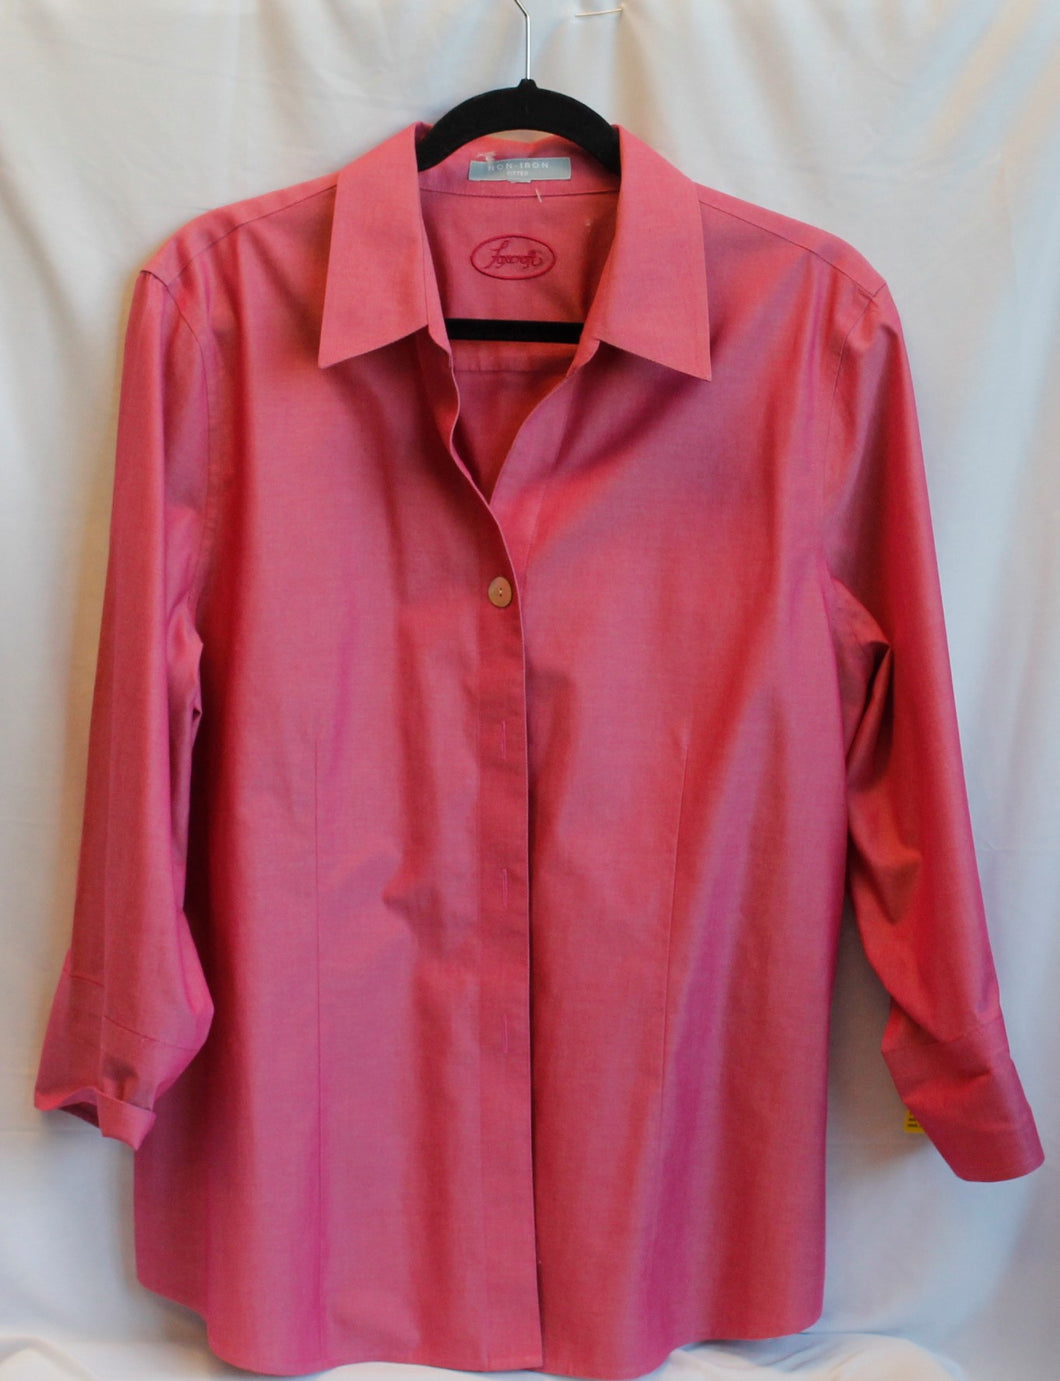 Women's Light Pink Shirt